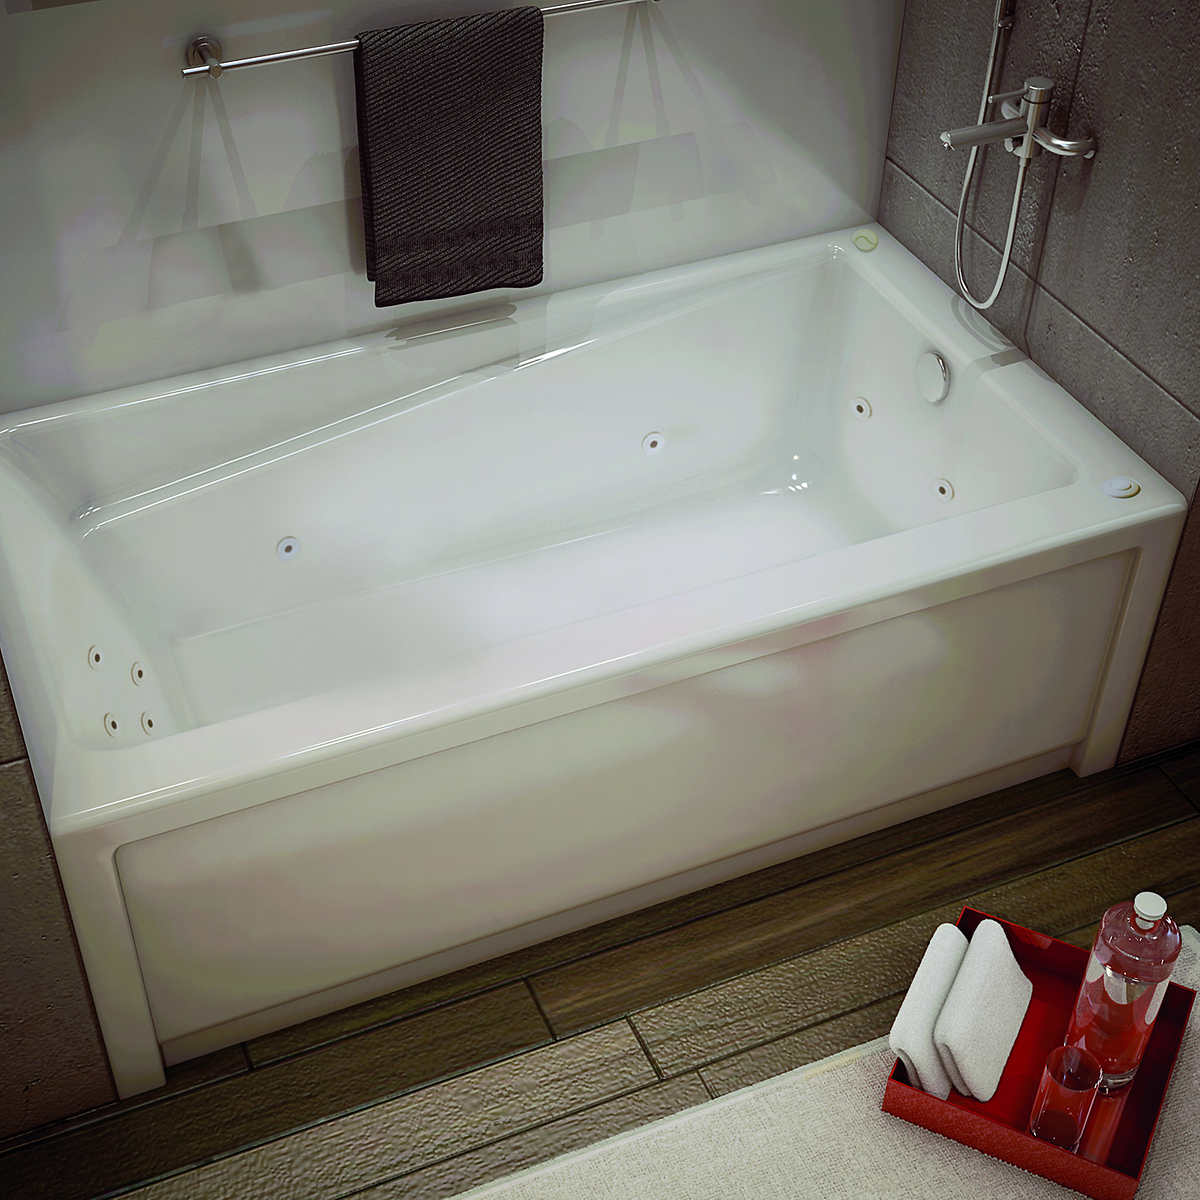 Fine Bath Tub Paint Huge Bathtub Refinishers Square Bath Refinishing Service Paint A Bathtub Youthful Paint For Tubs Gray Can I Paint My Bathtub